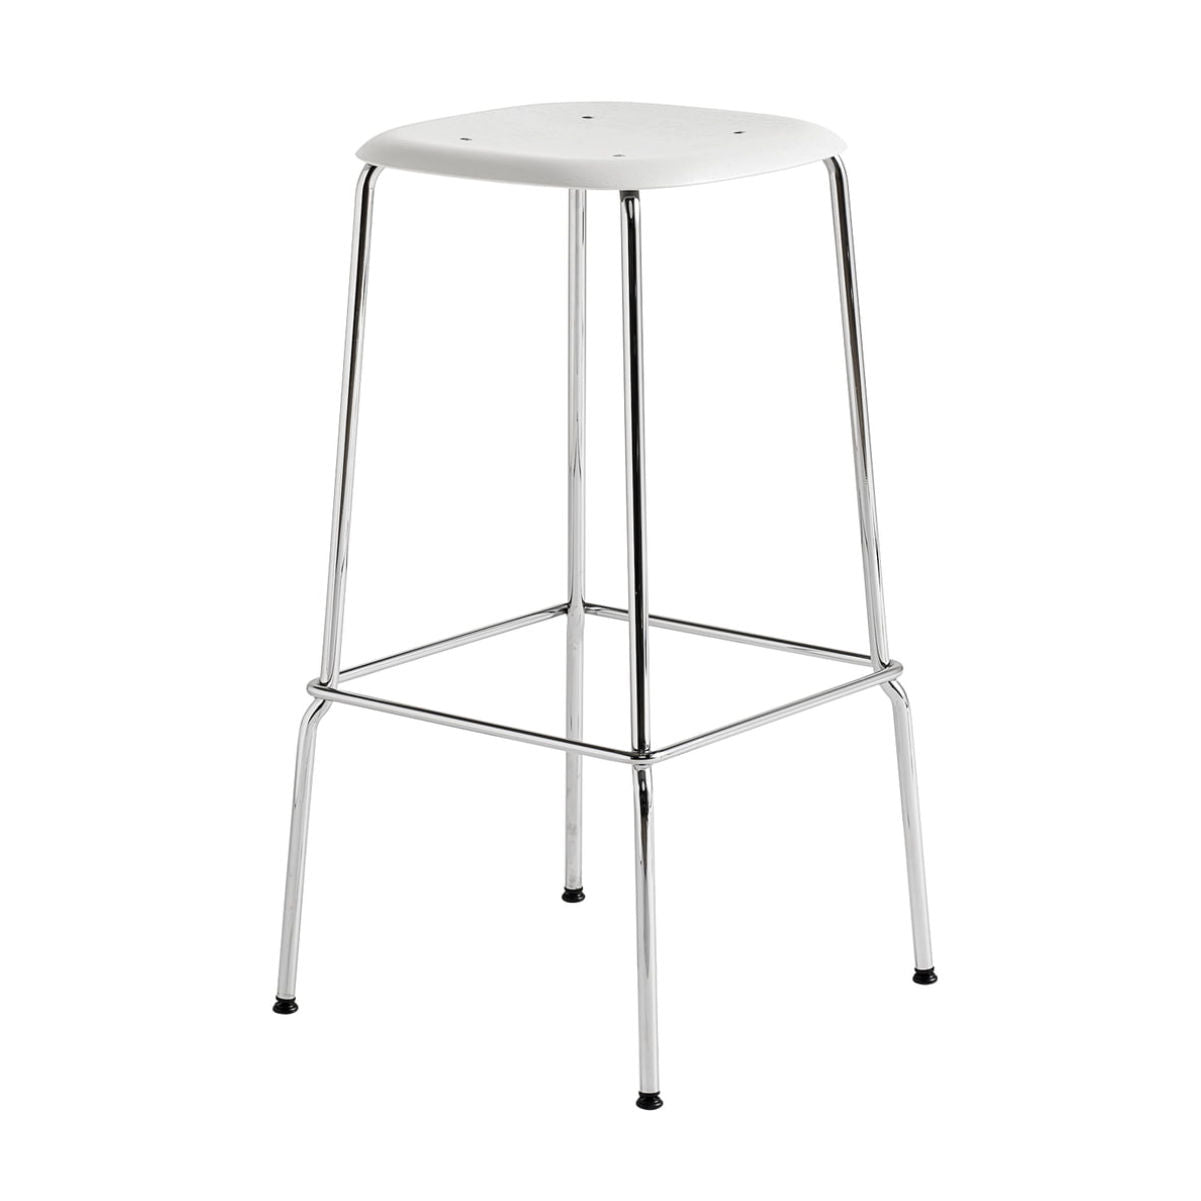 Hay Soft Edge P30 bar stool, white, chrome